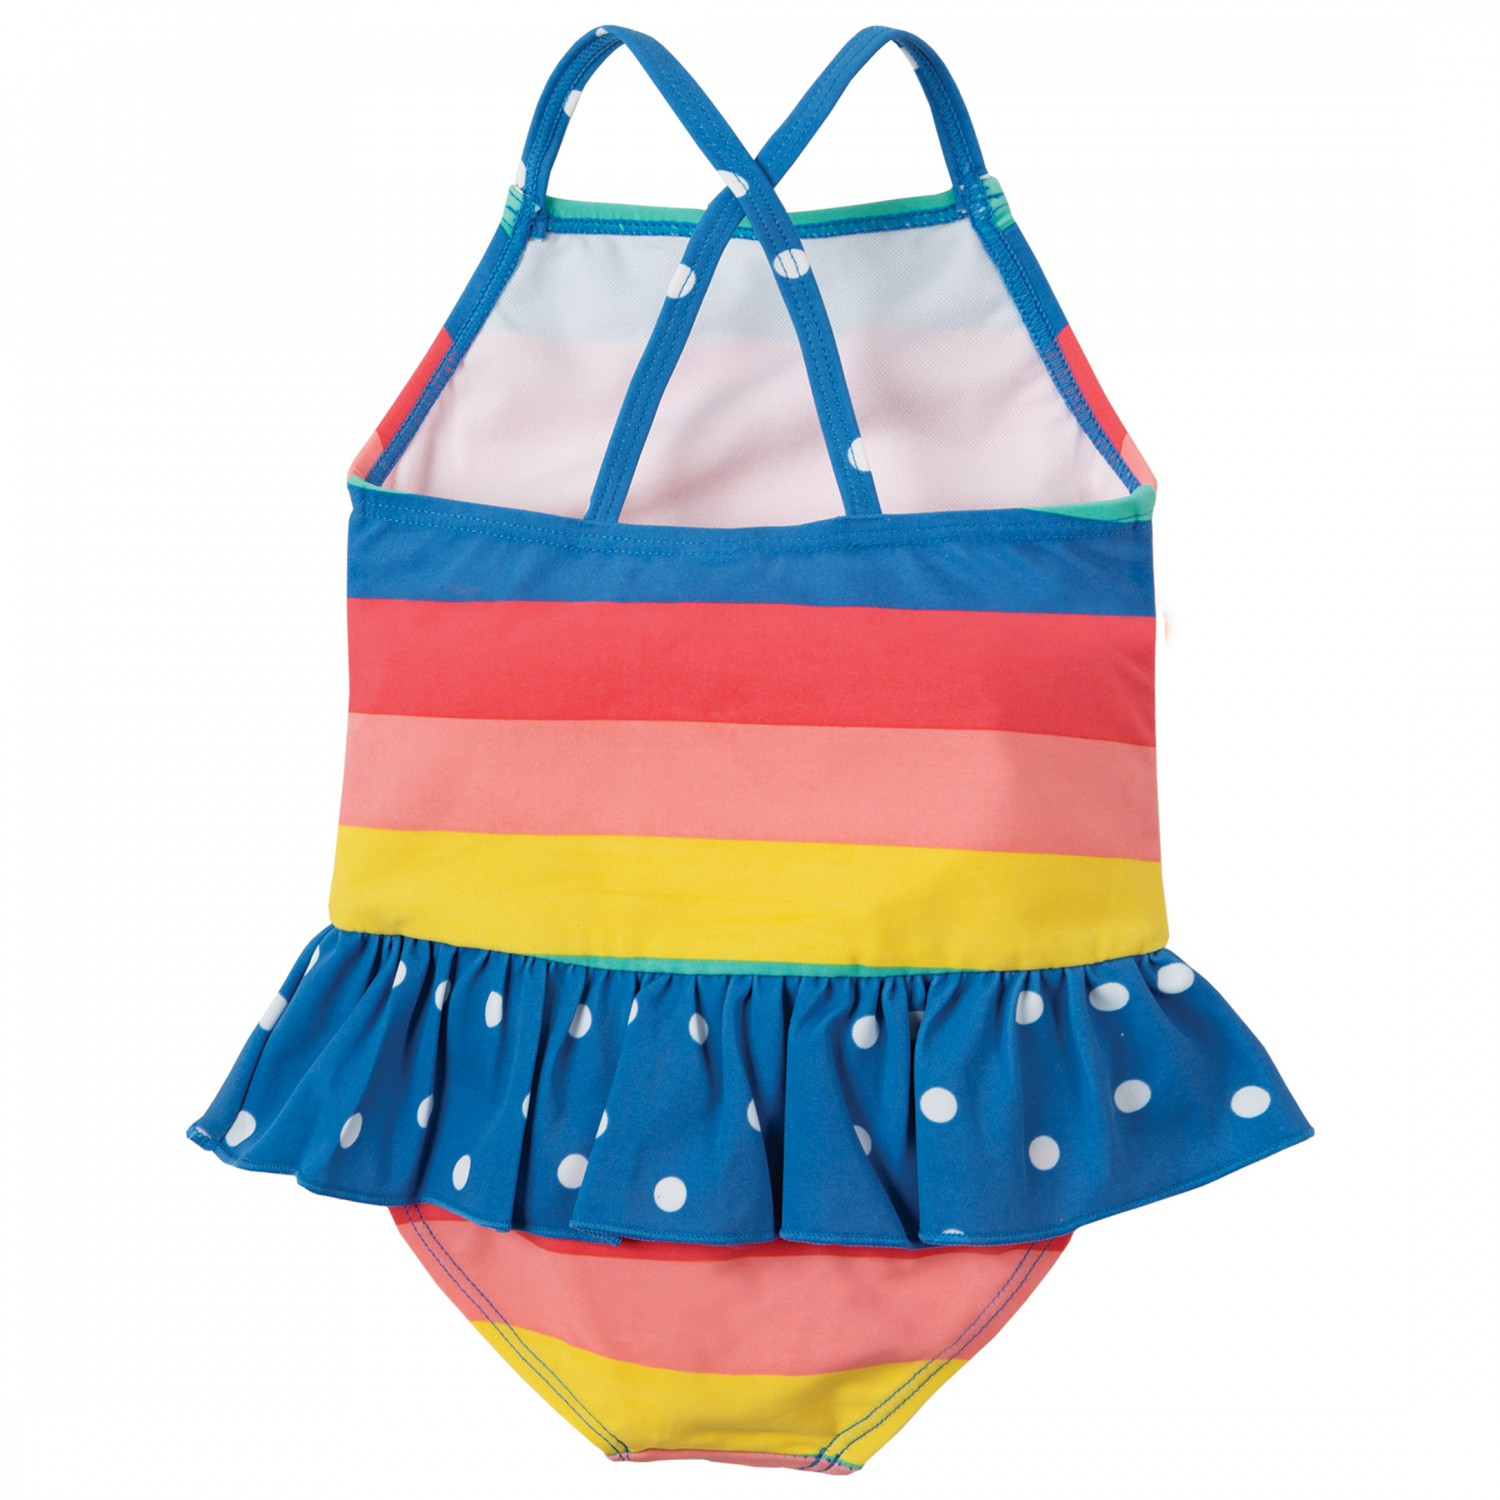 2ebf4698ca760 ... Frugi - Kid s Little Coral Swimsuit - Swimsuit ...